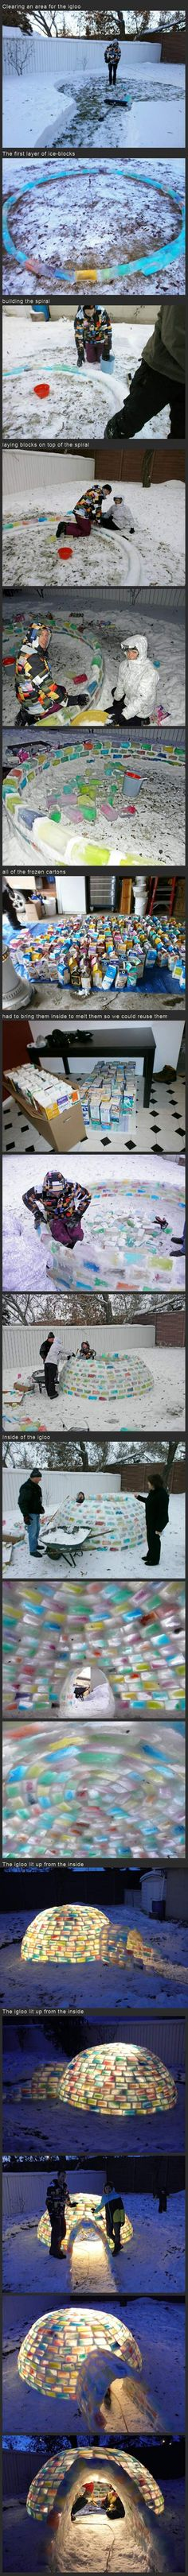 Soooo cool!!! Not really practical from a survival standpoint, but fun anyway. #igloo #shelter #outdoorcamping